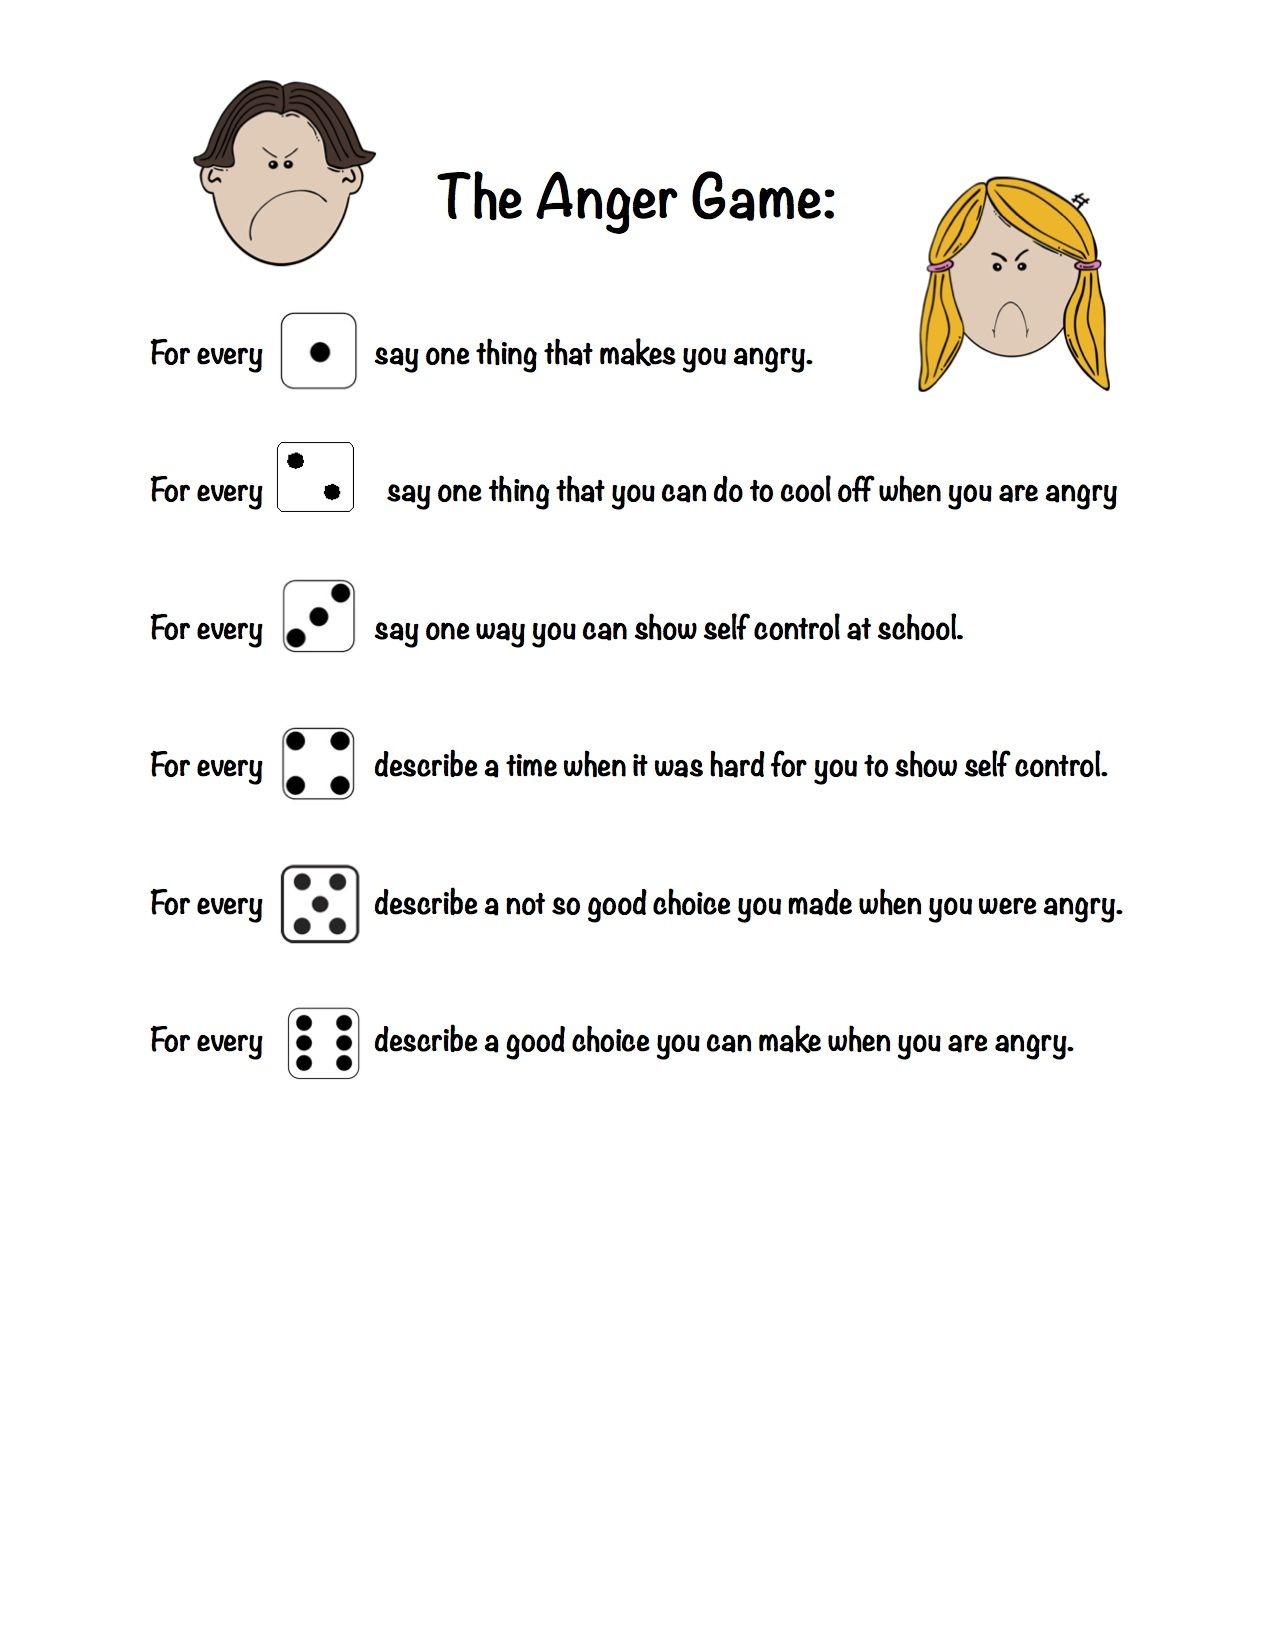 Worksheets Anger Worksheets For Kids the anger game used with one dice and helpful for kids working on controlling anger